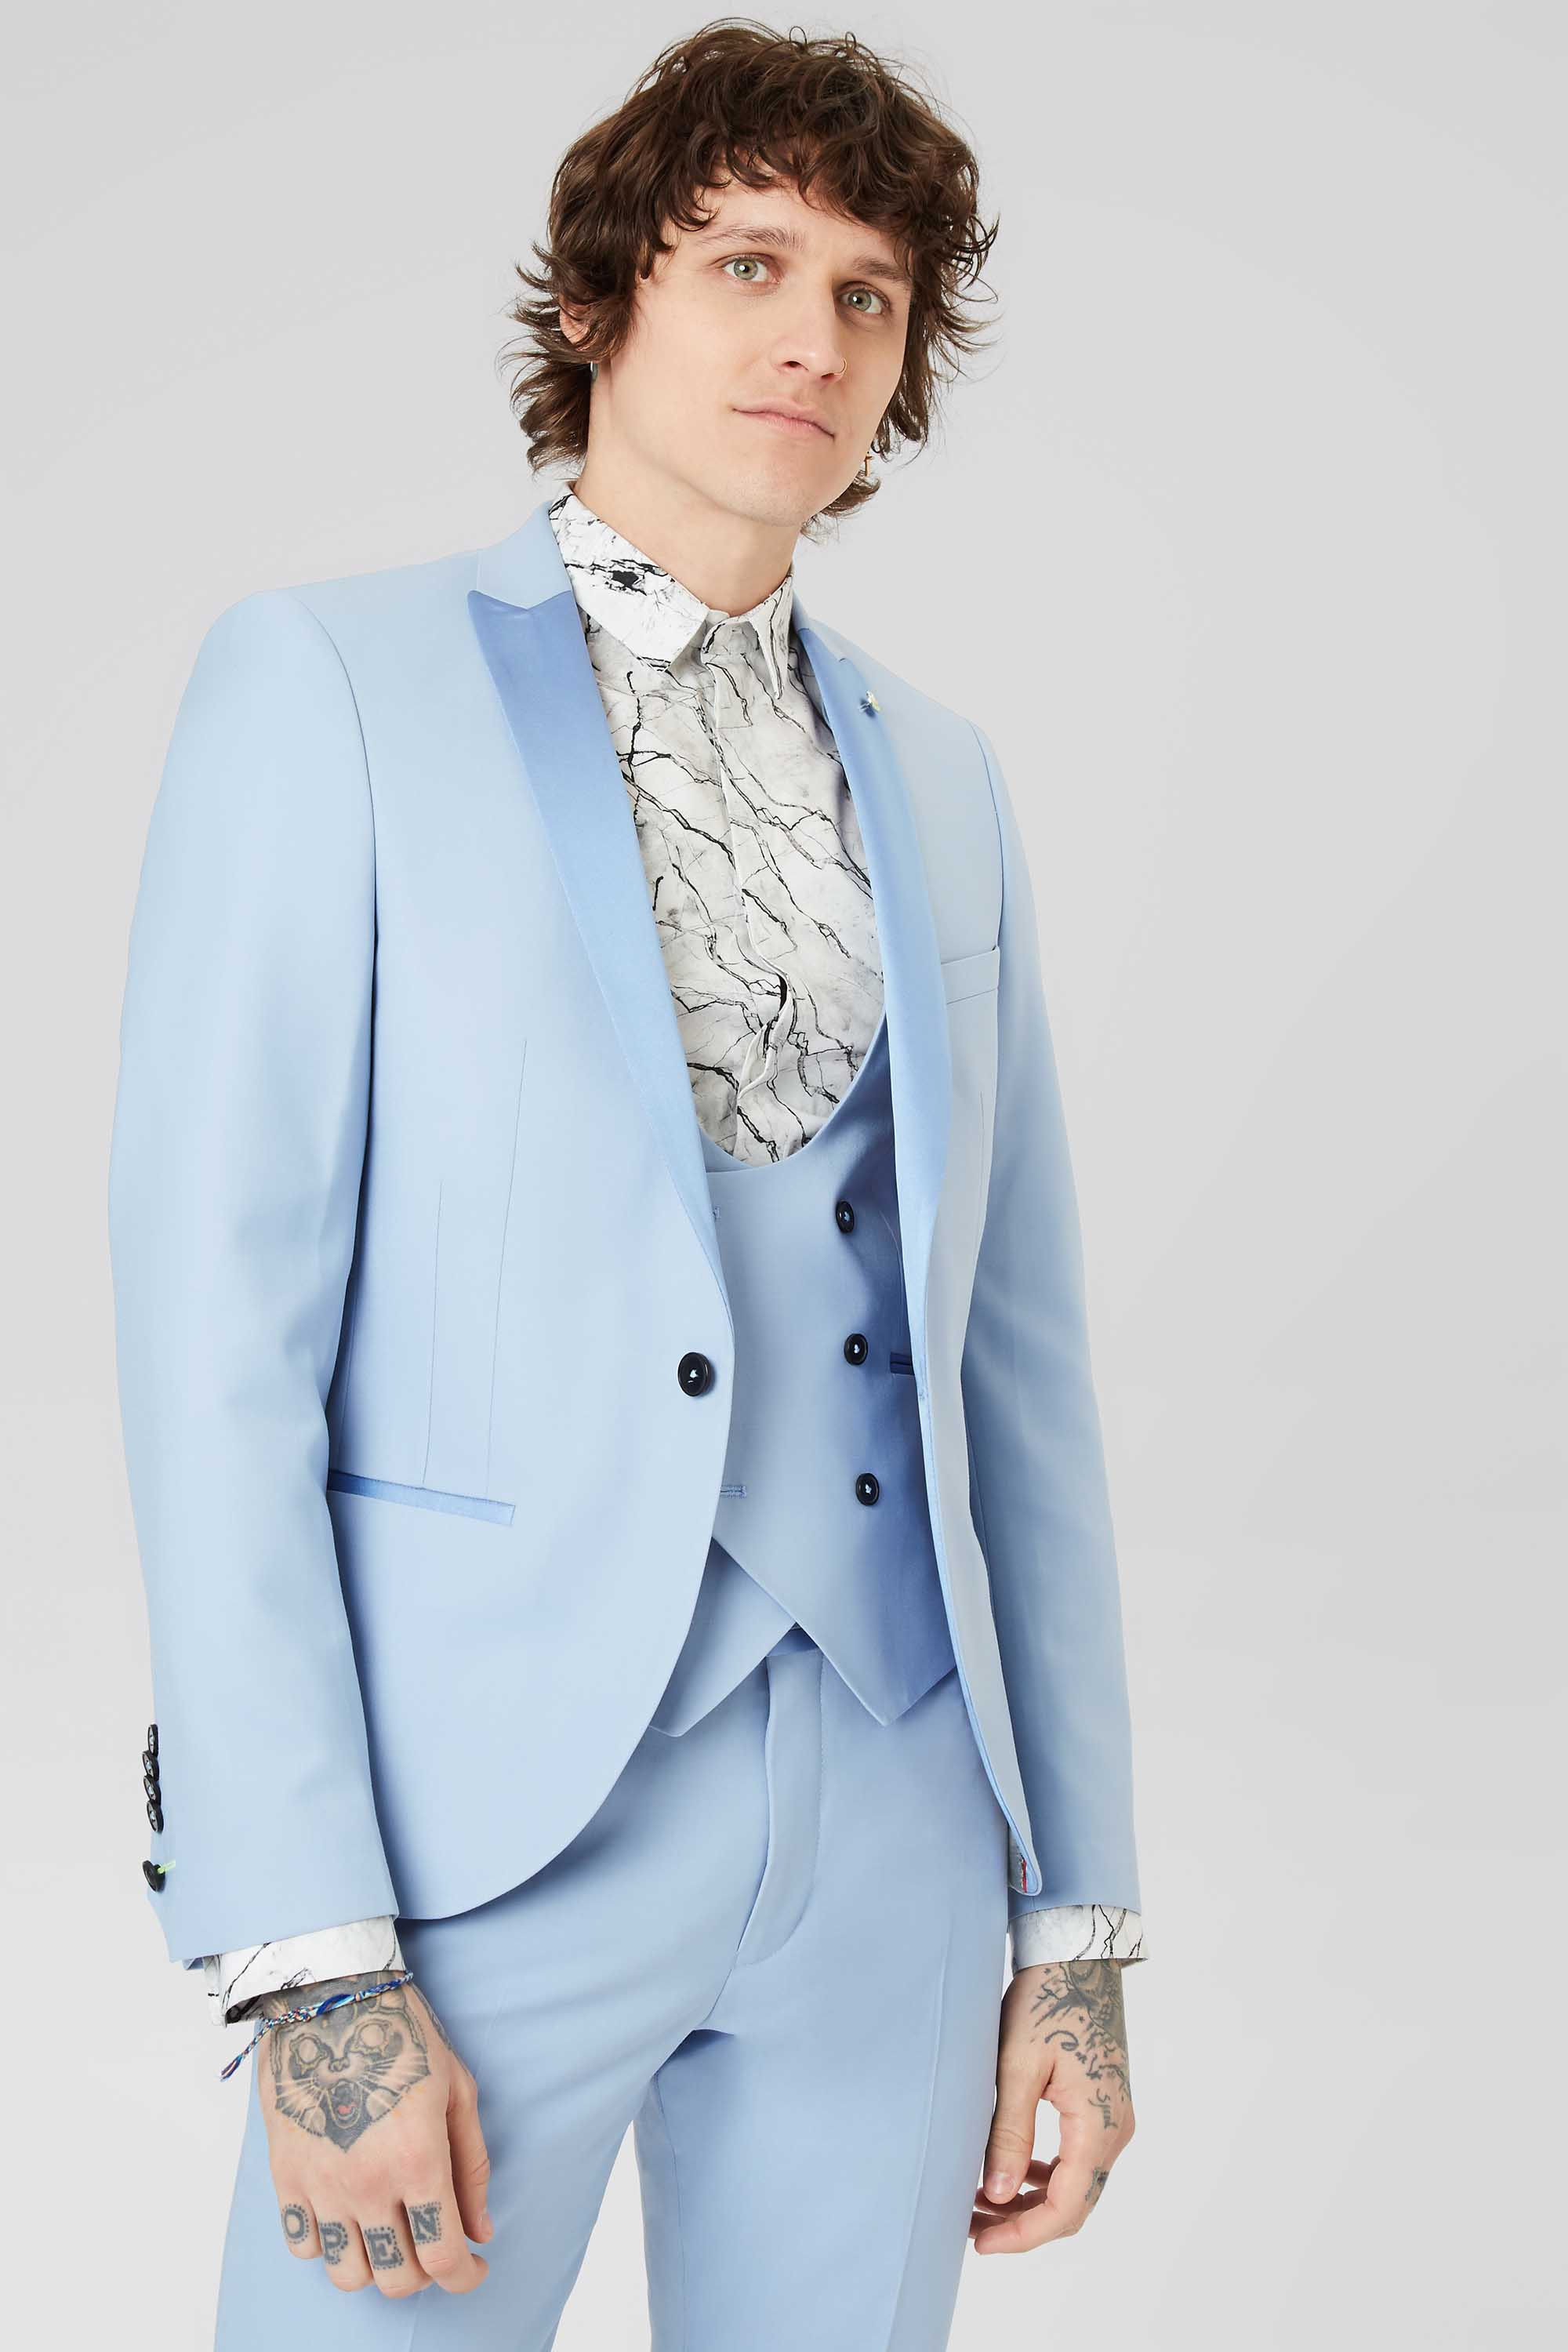 BRIAN SKINNY FIT TUXEDO JACKET IN ICE BLUE